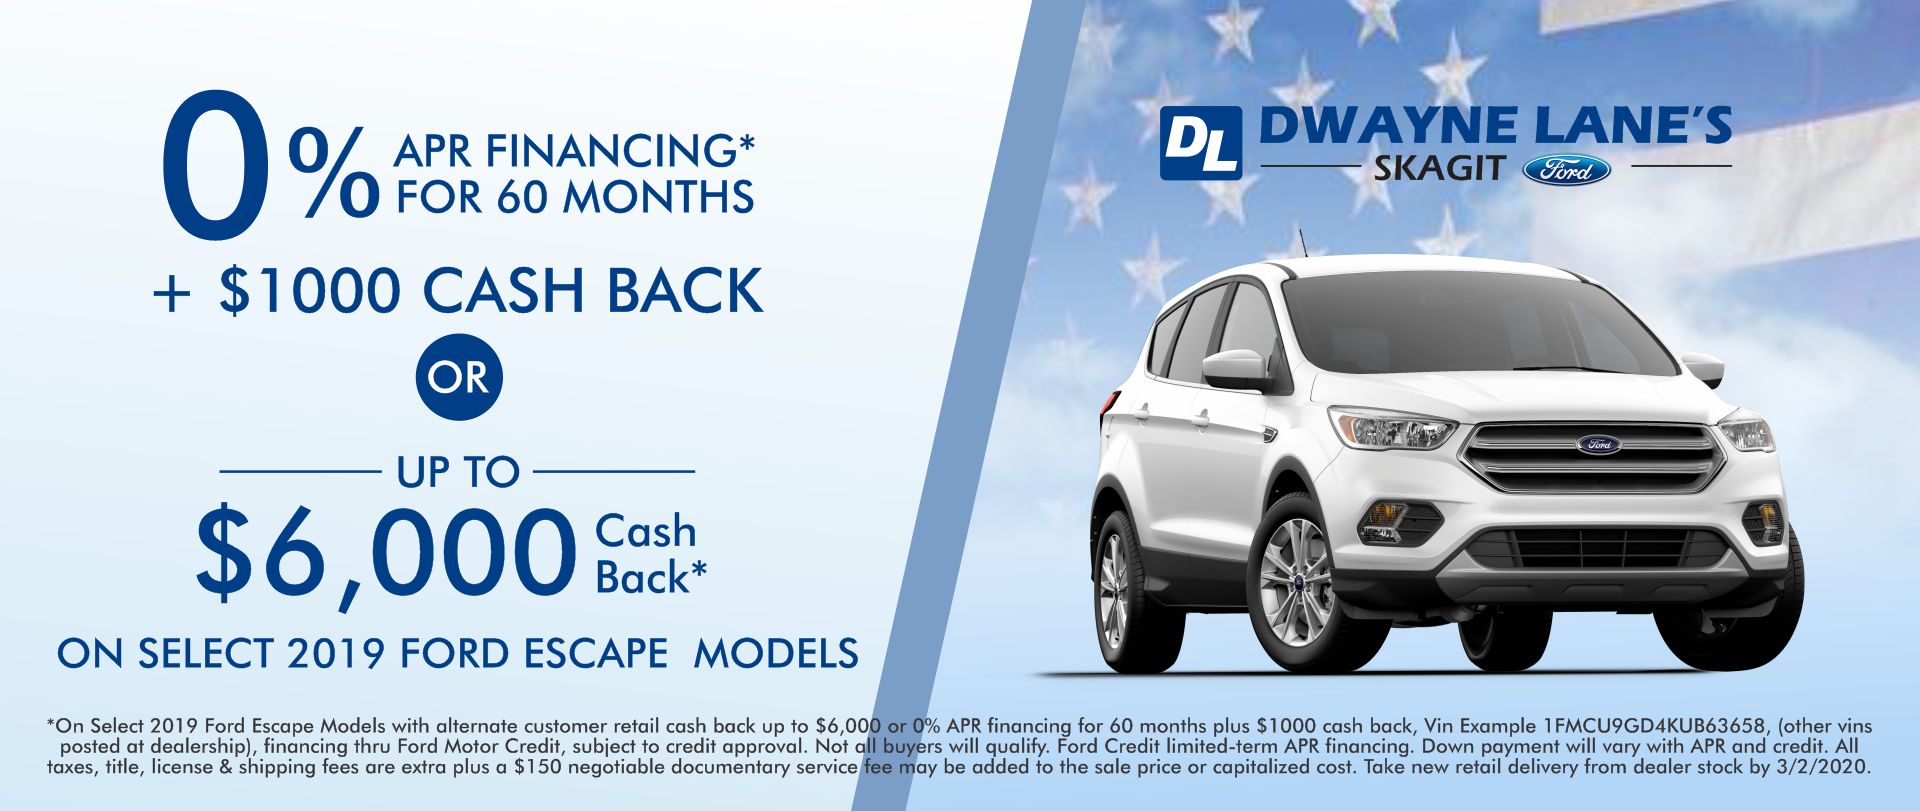 Dwayne Lane's Skagit Ford - 0% APR on select 2019 Ford Escapes